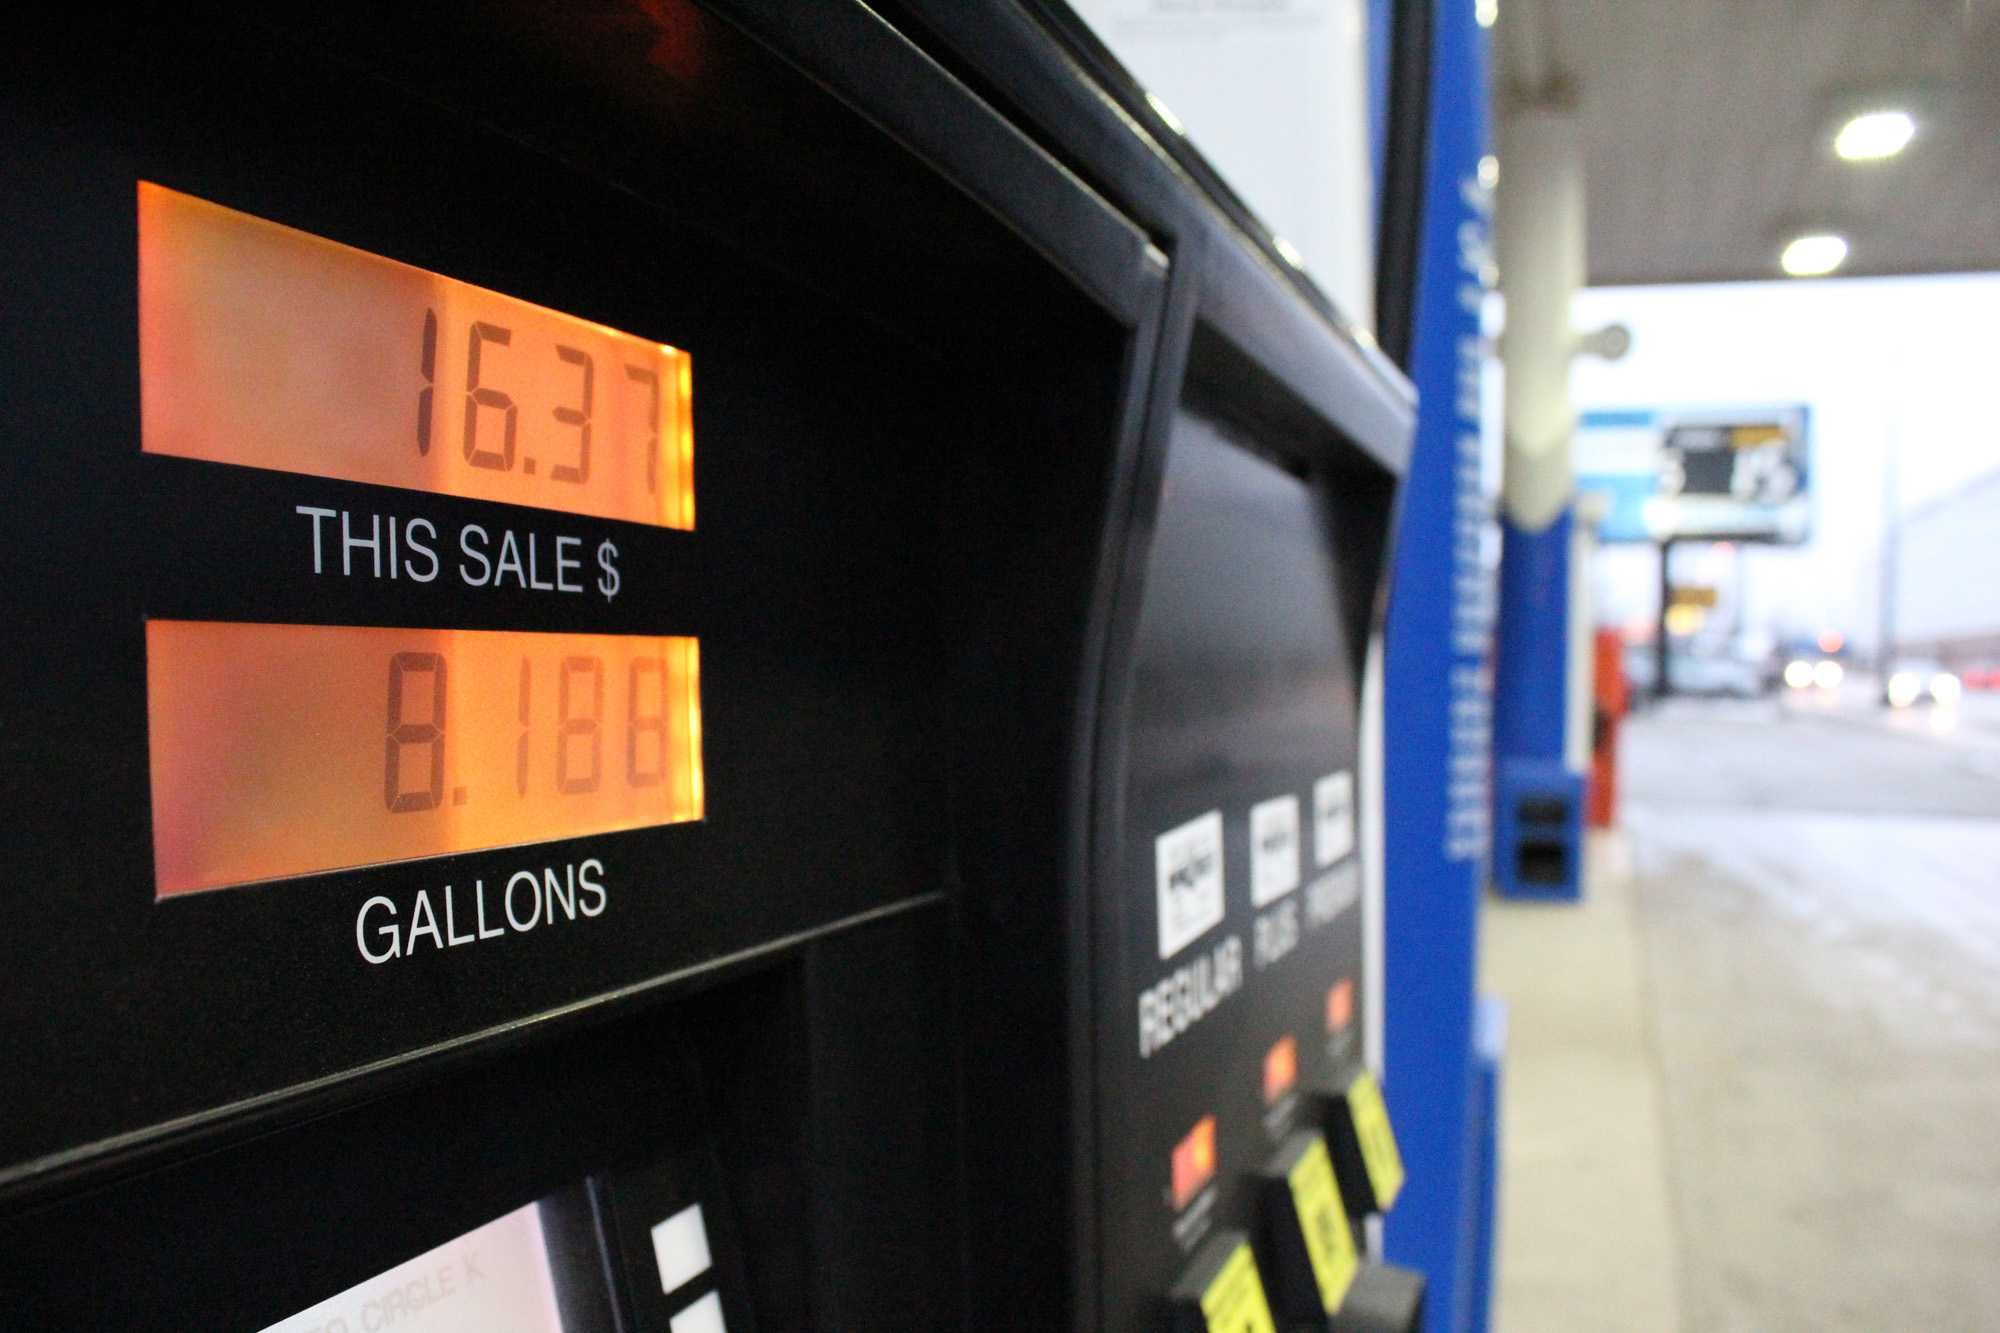 Gas prices across the nation have hit recent lows as a result of the fall of crude oil. The drop in gas prices is leading consumers across the U.S. and in Champaign-Urbana to spend more on other goods.